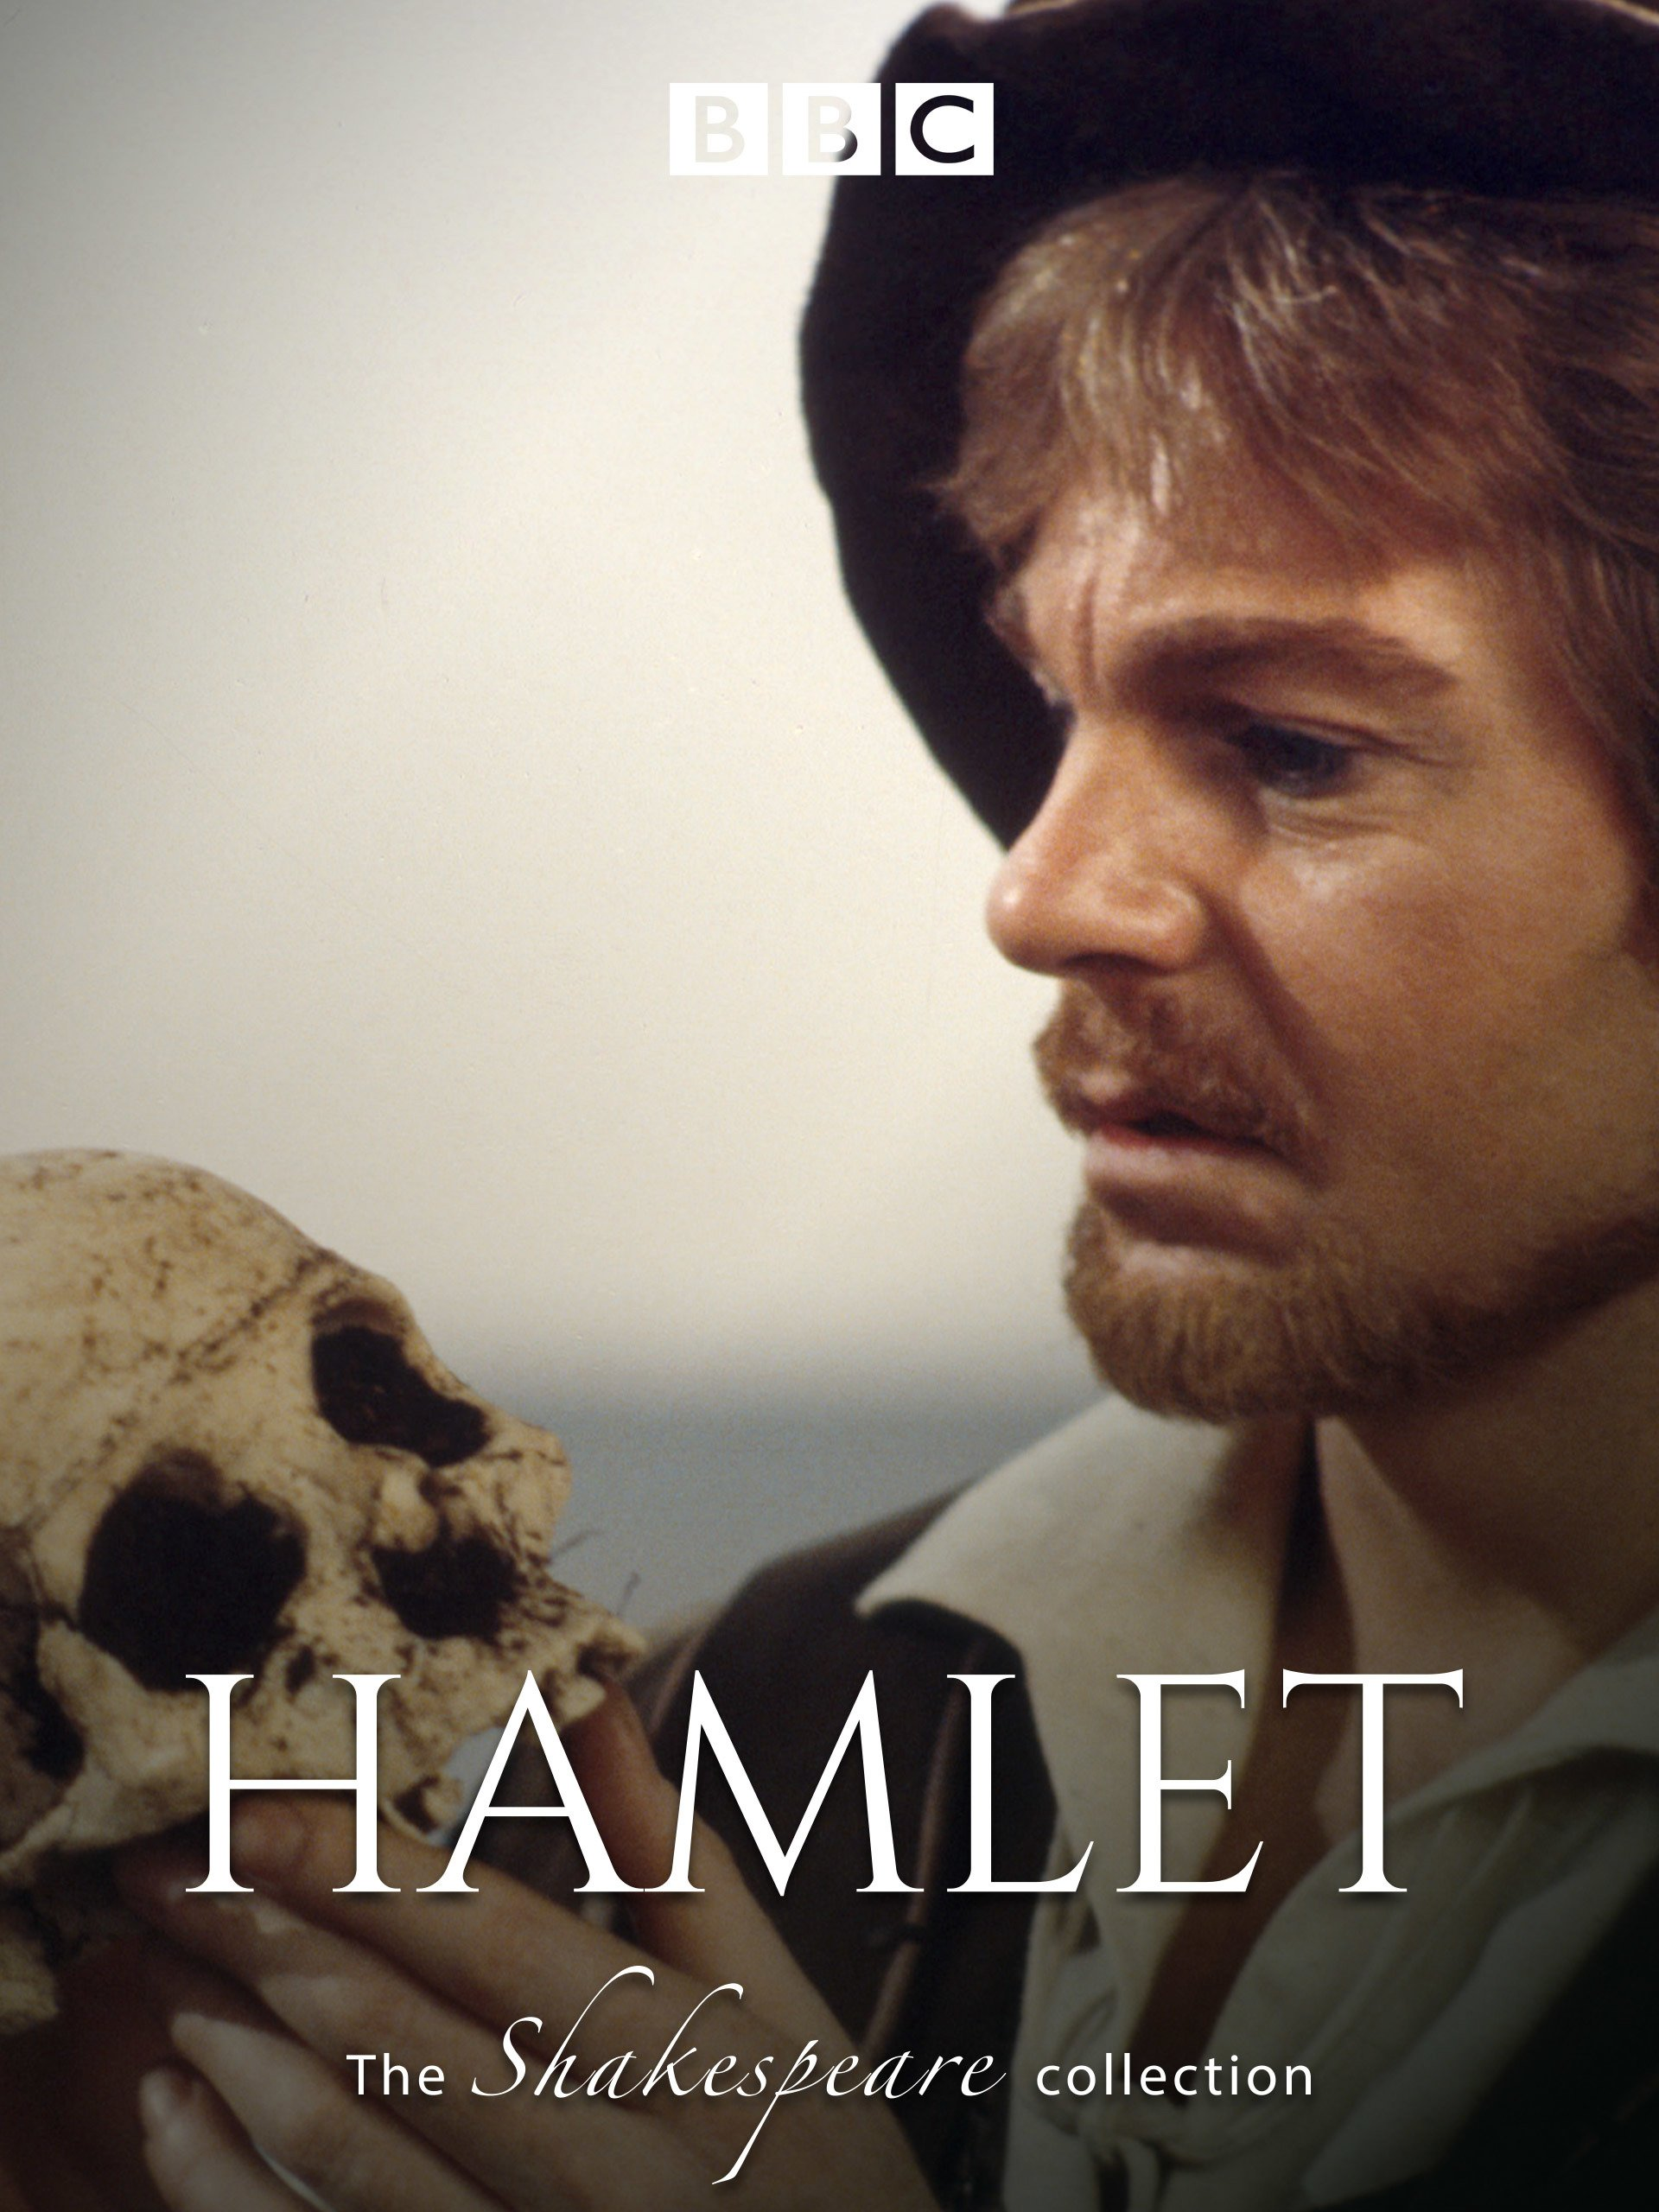 hamlet movie review essay